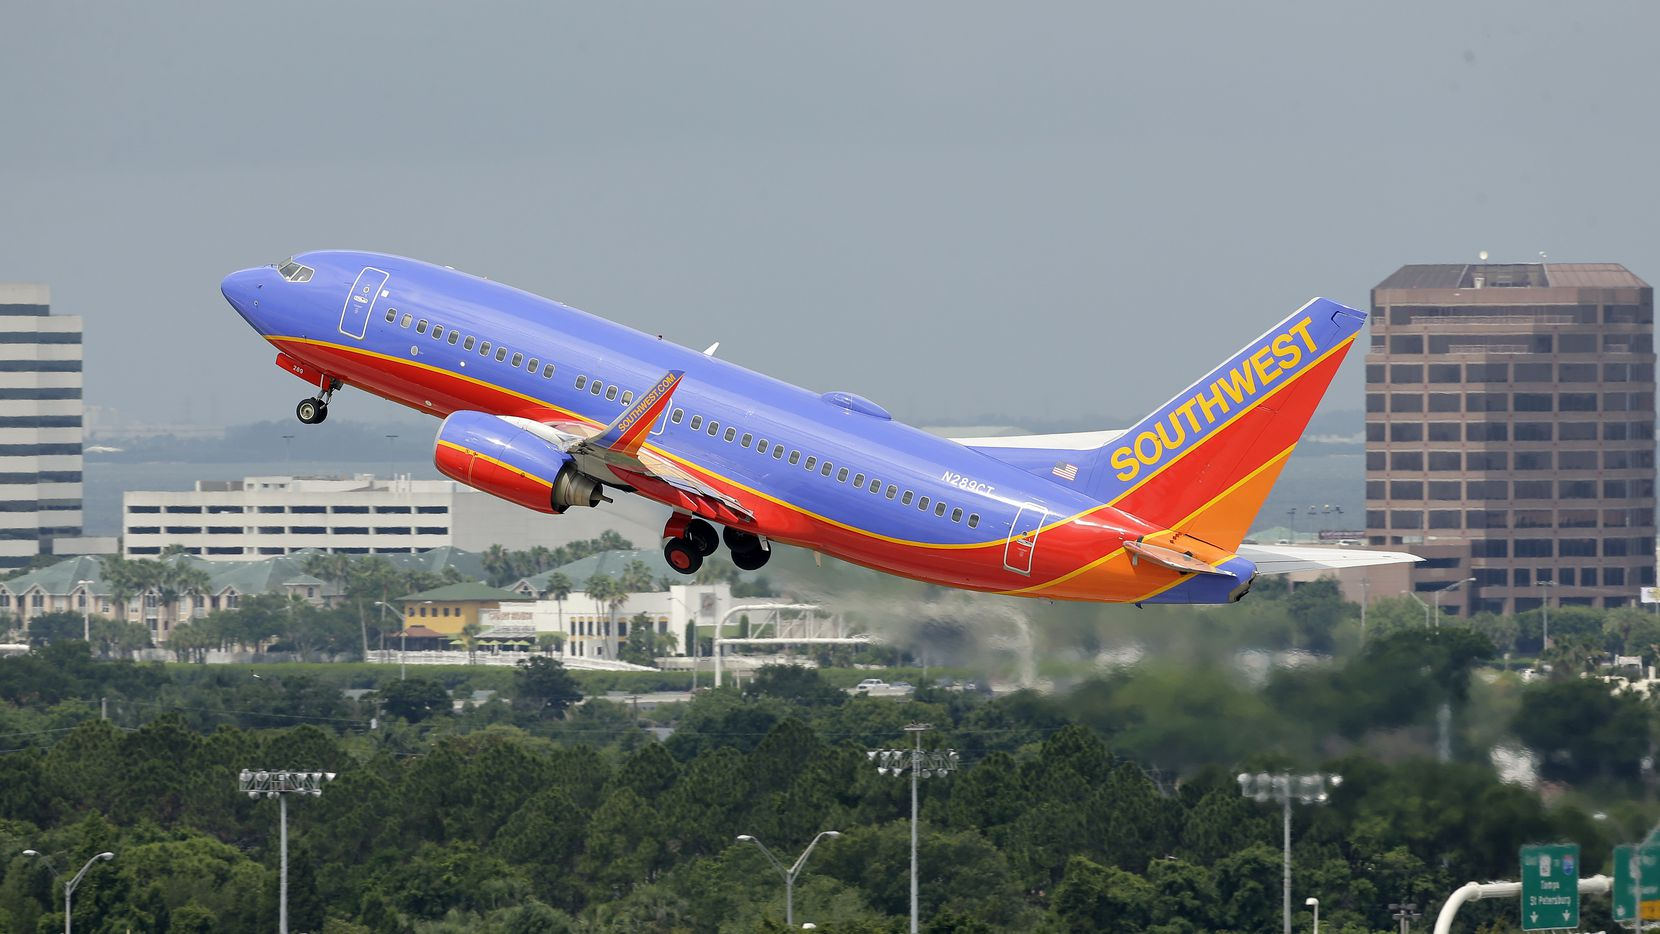 Southwest Airlines has been building up goodwill with the flying public, investors and employees for years, even decades. That's helped the company stock price weather last week's accident.